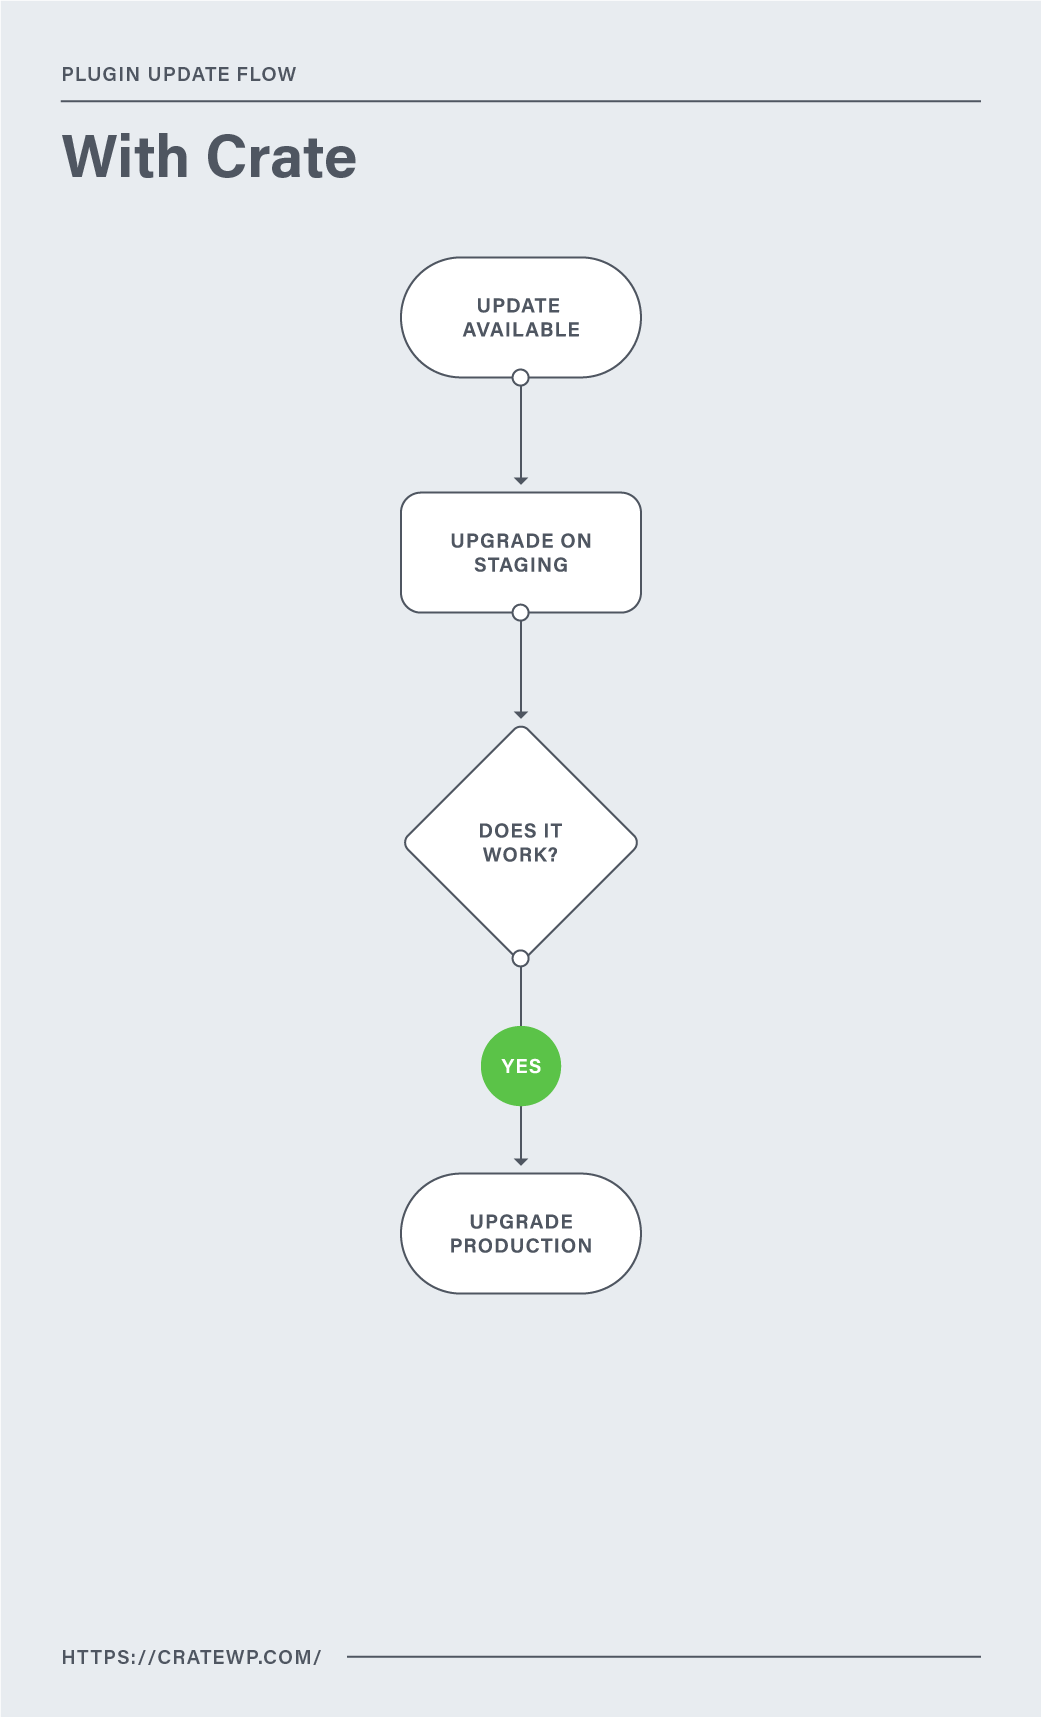 Flowchart demonstrating plugin update flow with Crate